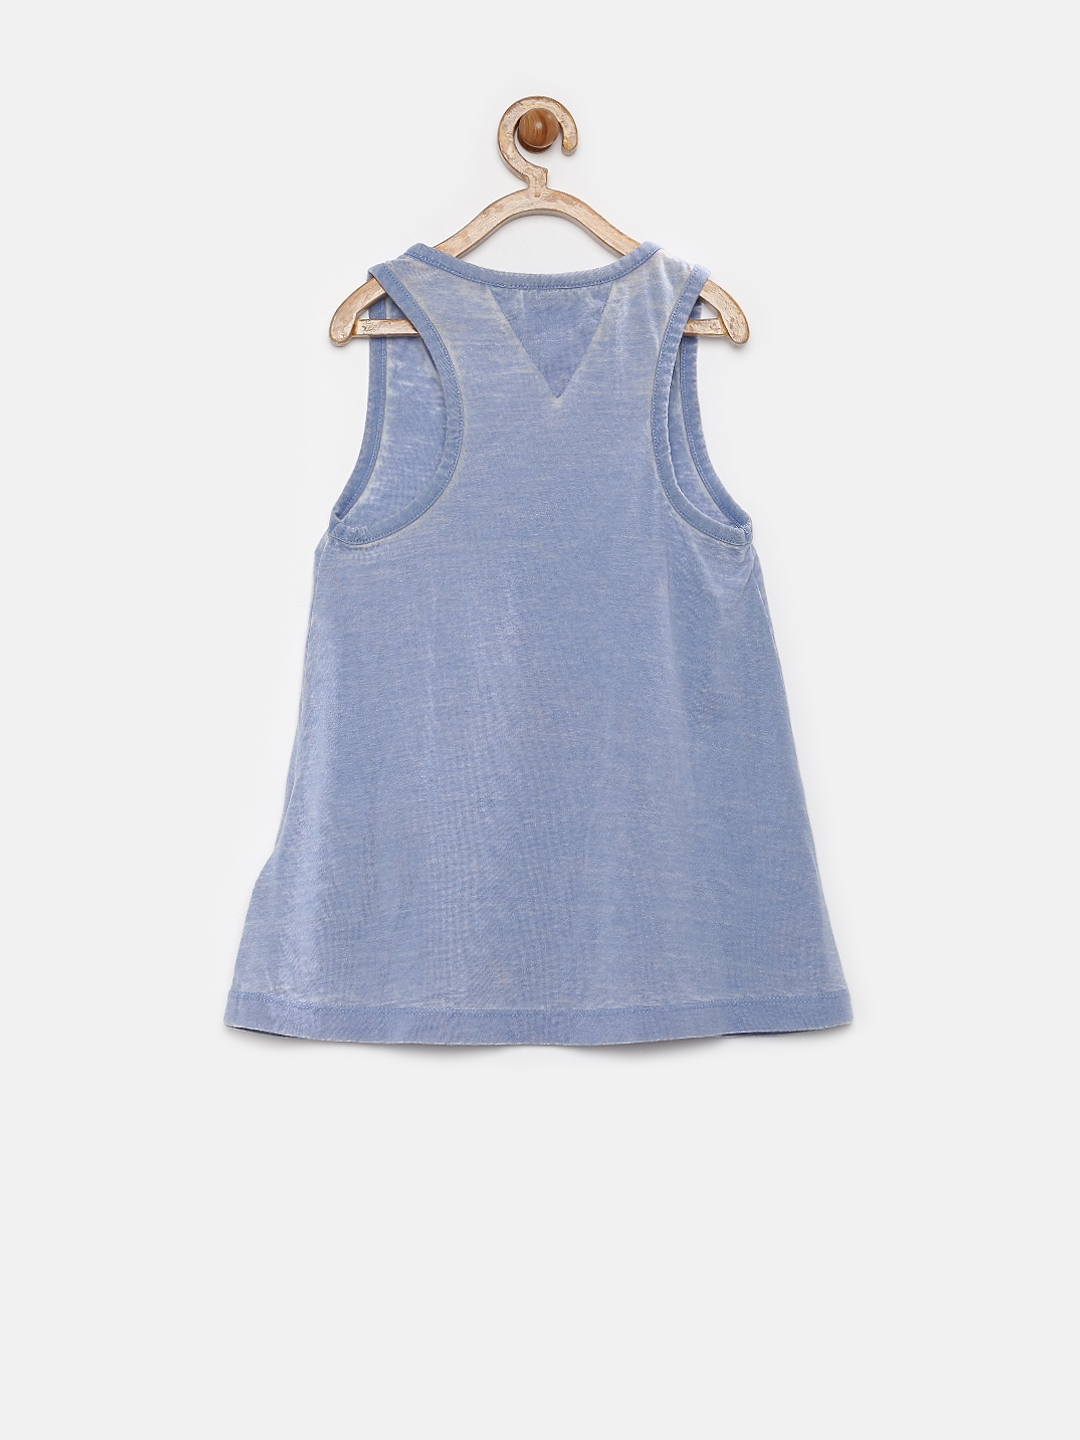 ce0355ac64819e Buy Tommy Hilfiger Girls Blue Tank Top - Tops for Girls 1254100